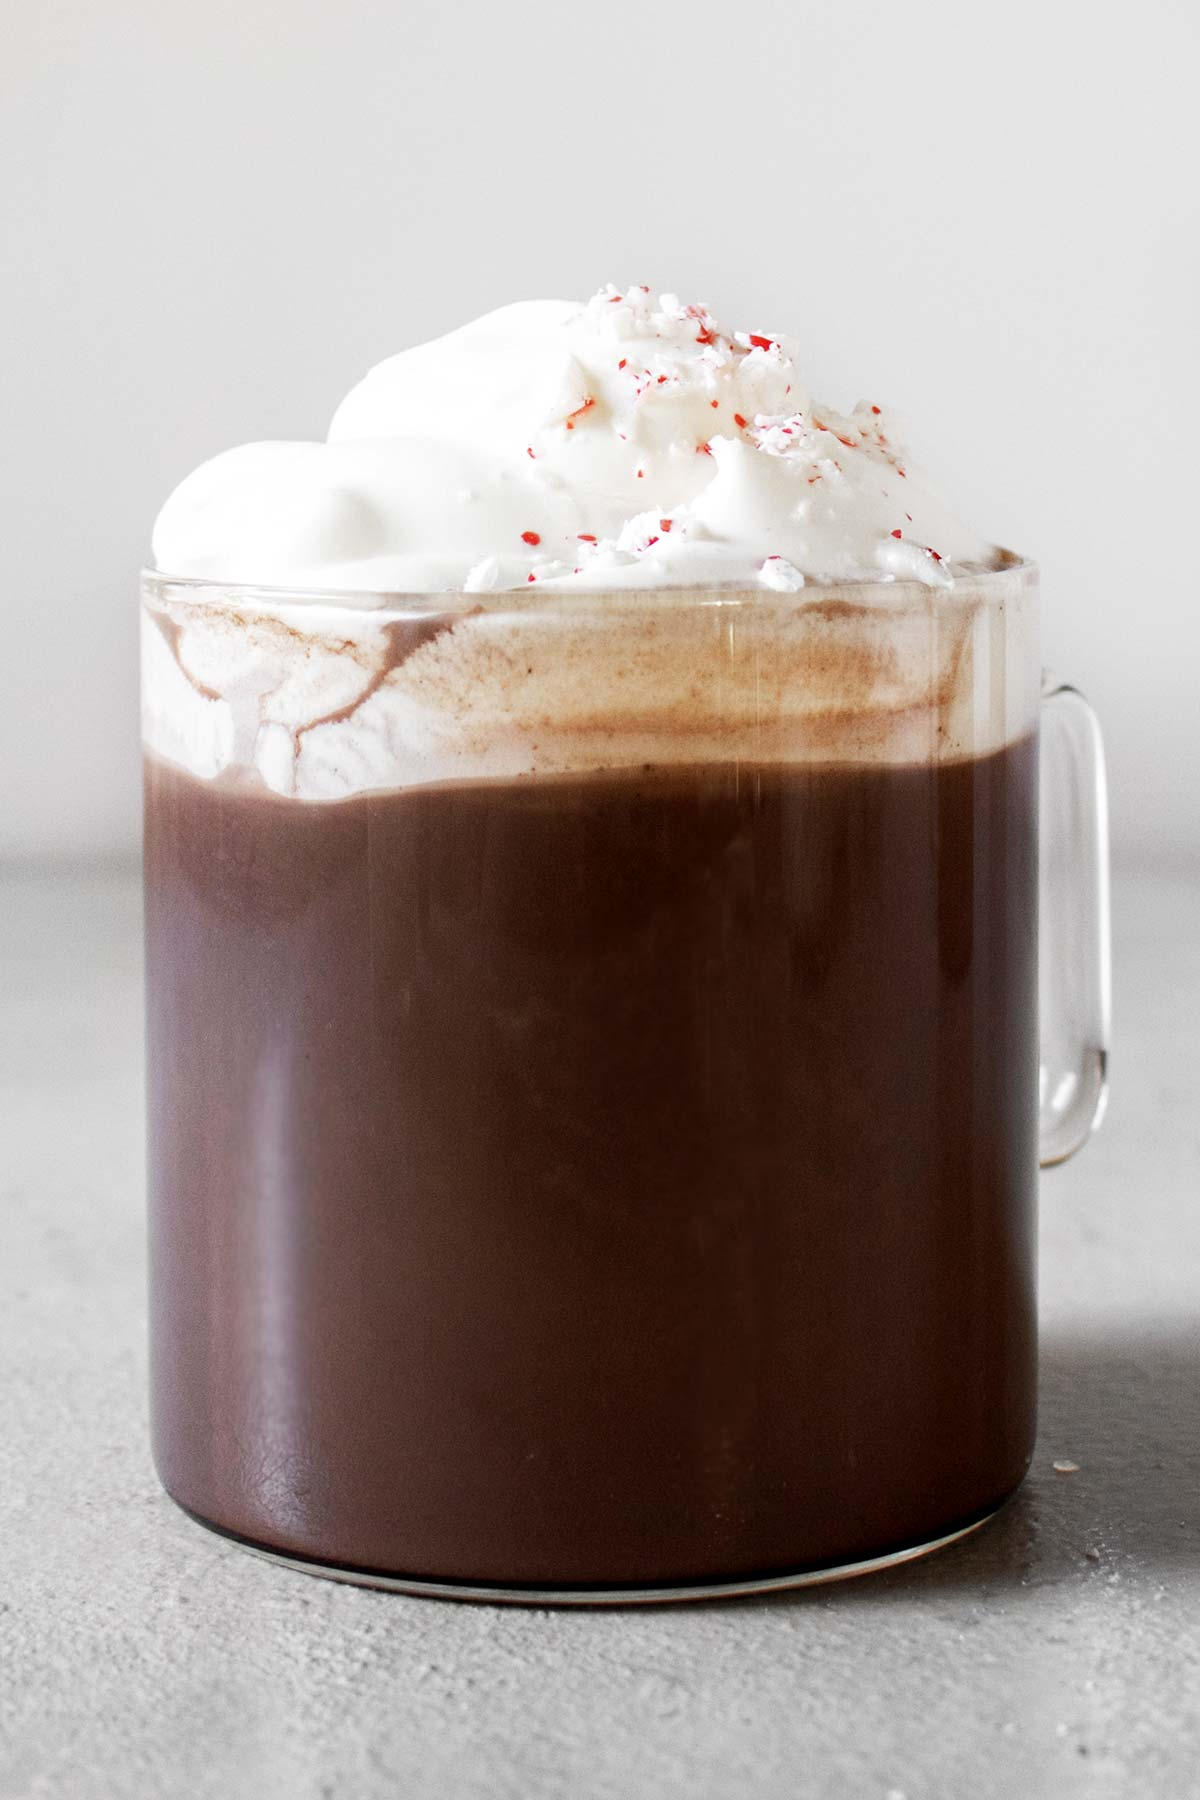 Peppermint hot chocolate in a glass mug with whipped cream and crushed candy cane.